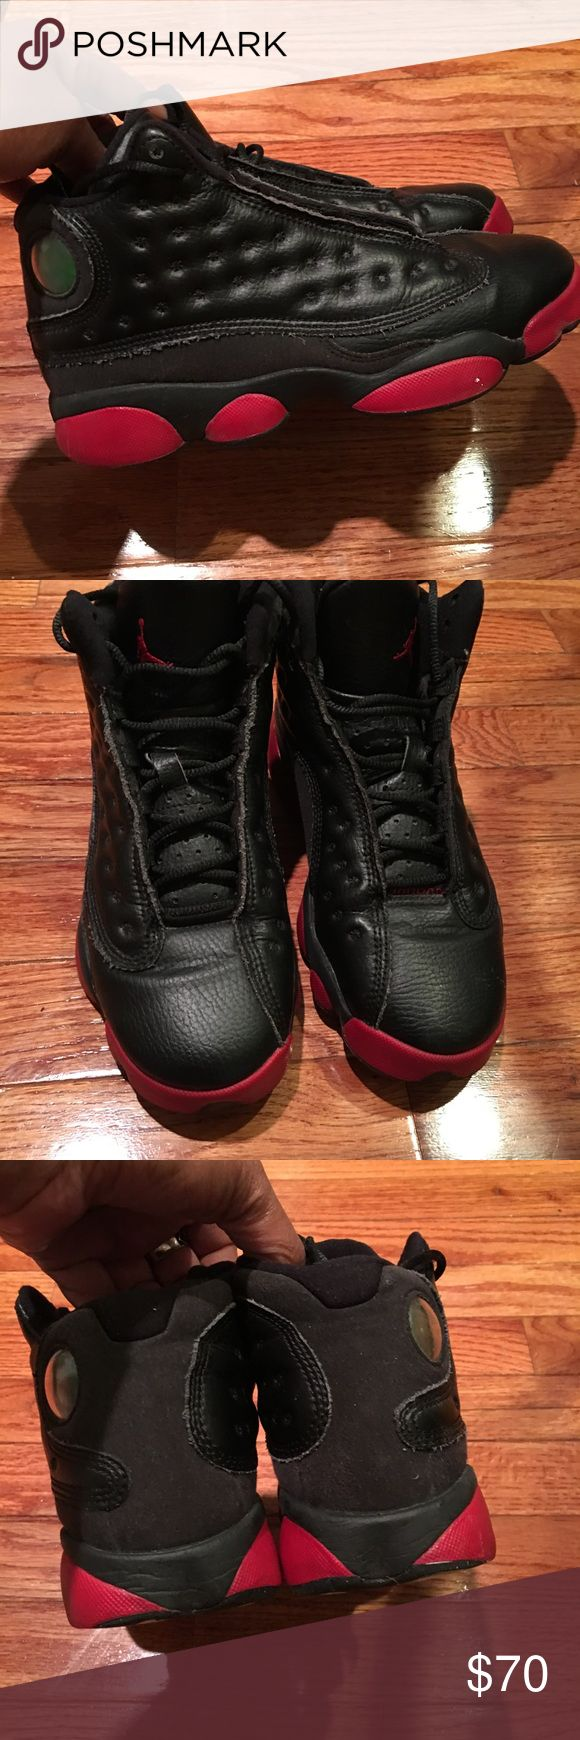 Kids Jordan's In used condition but still have some life left in them Air Jordan Shoes Sneakers